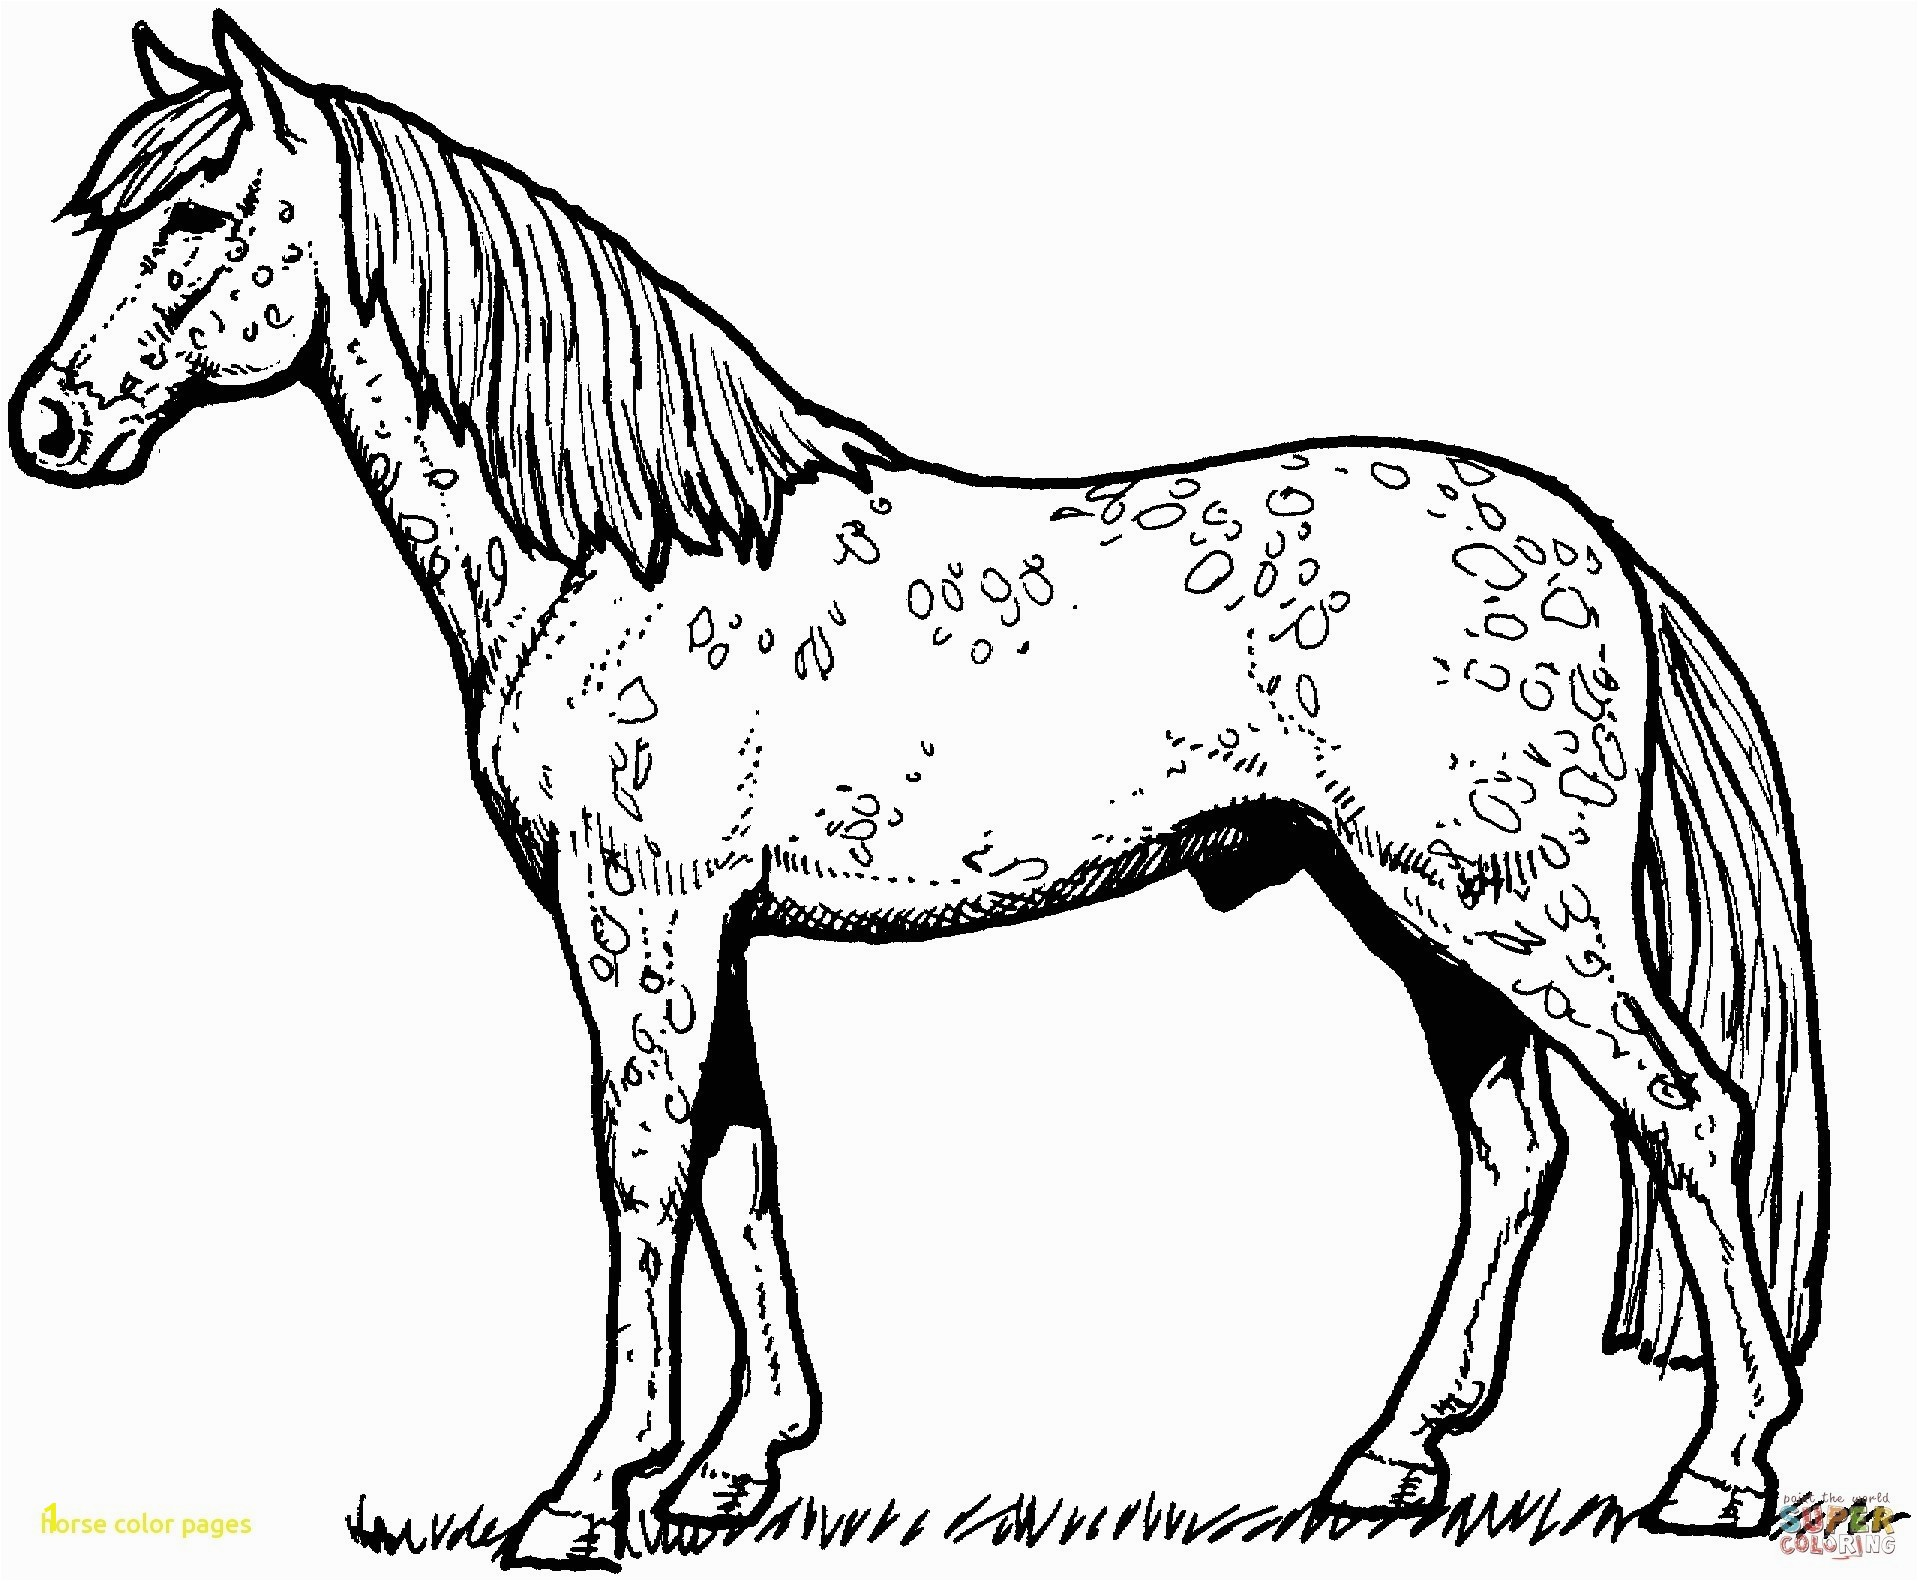 free printable horse coloring pages Horse Color Pages With Horses Coloring Pages Free Printable